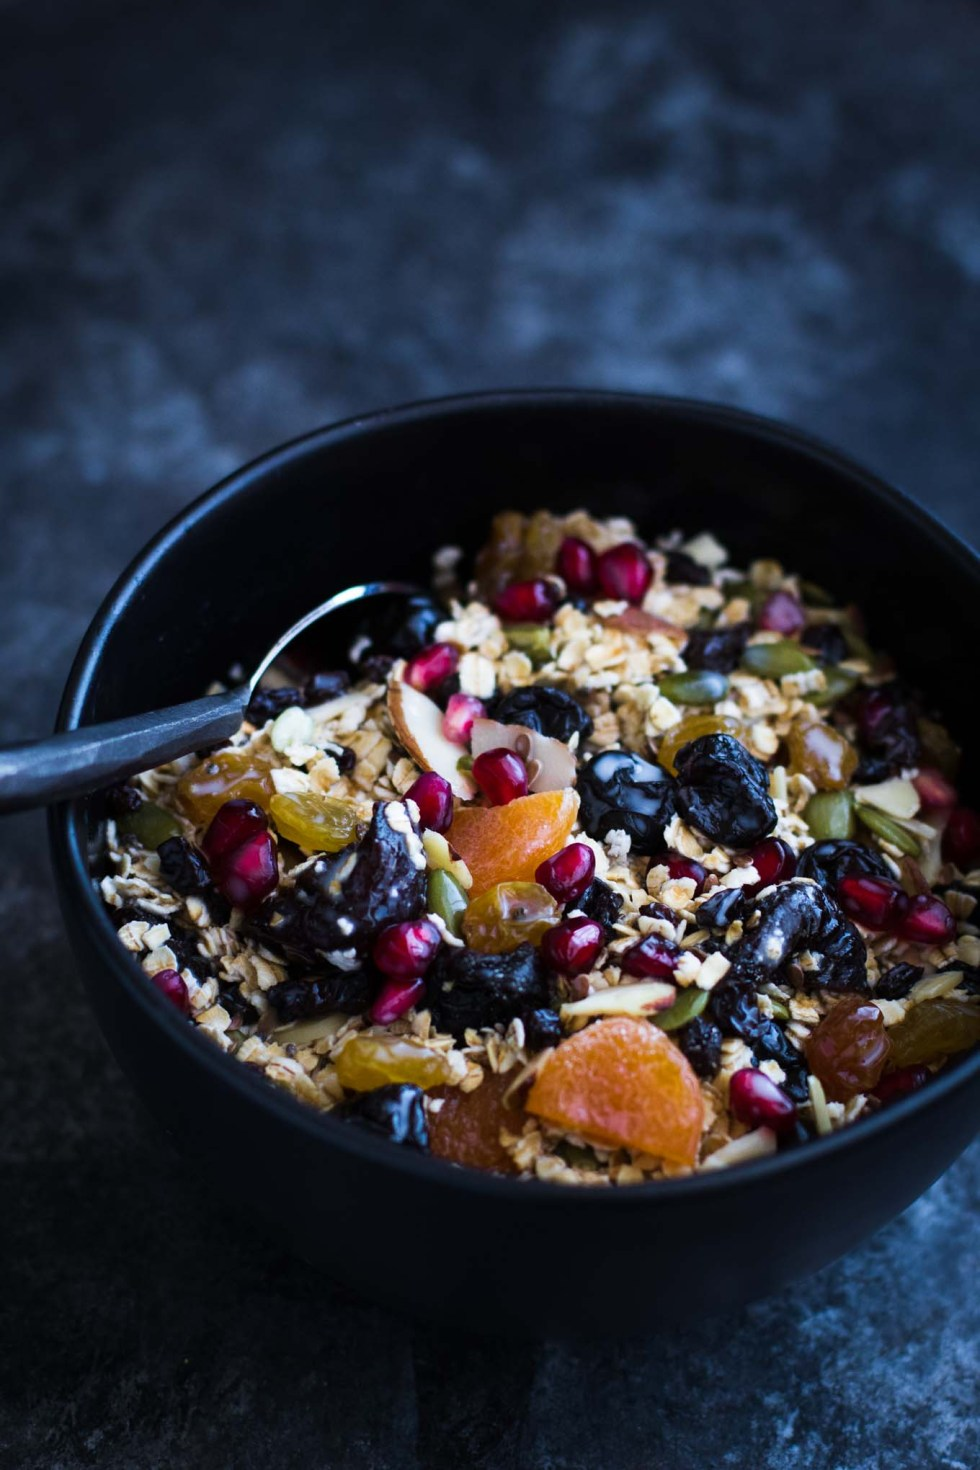 Homemade muesli filled with superfoods! This healthy breakfast is stuffed full of antioxidants, omegas, and deliciousness! Gluten-free, vegan, and vegetarian friendly!